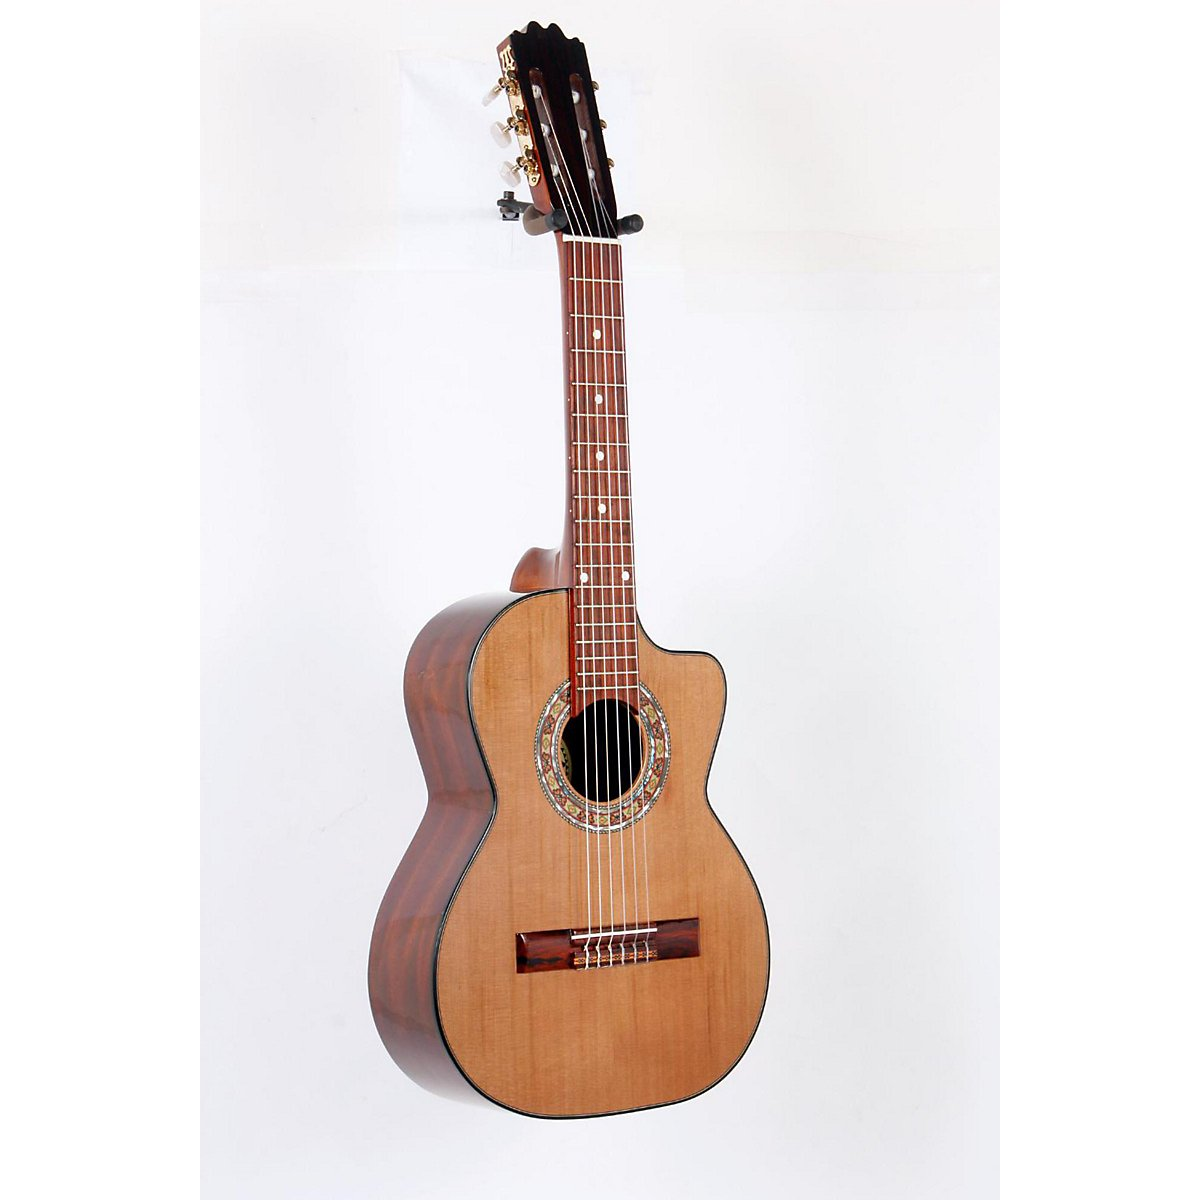 Amazon.com: Paracho Elite Guitars Gonzales 6 String Requinto, Natural: Musical Instruments